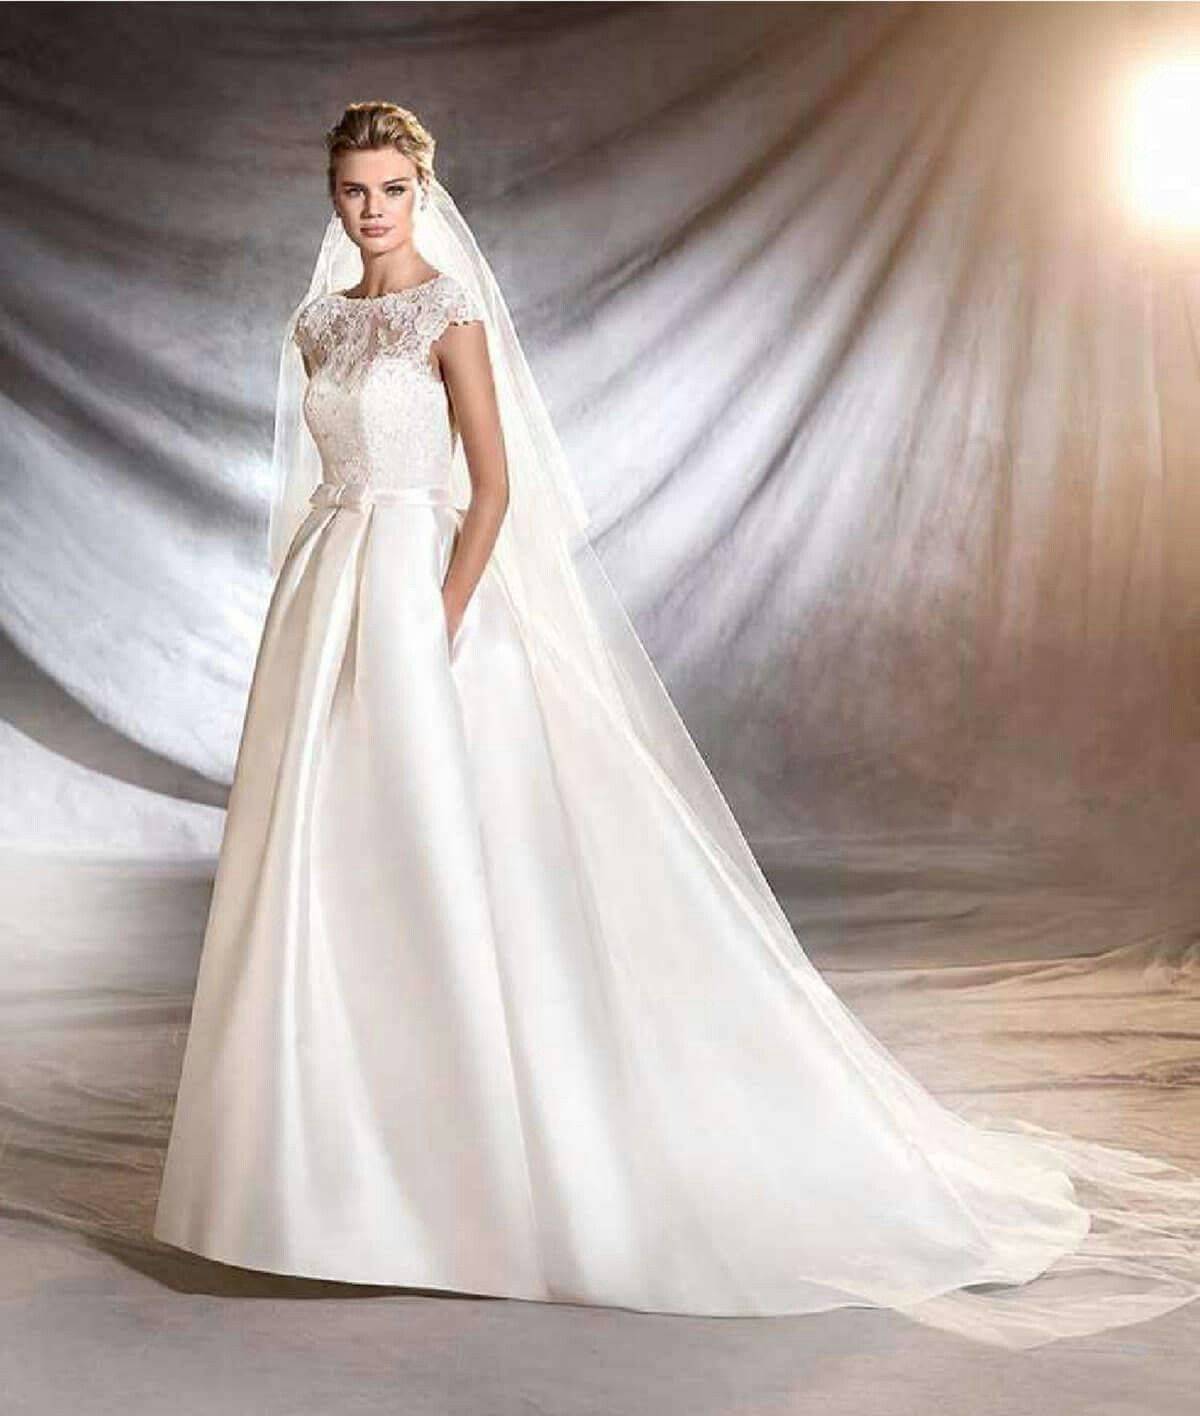 Where can i rent a wedding dress  Pin by Abby on Weddings  Pinterest  Weddings